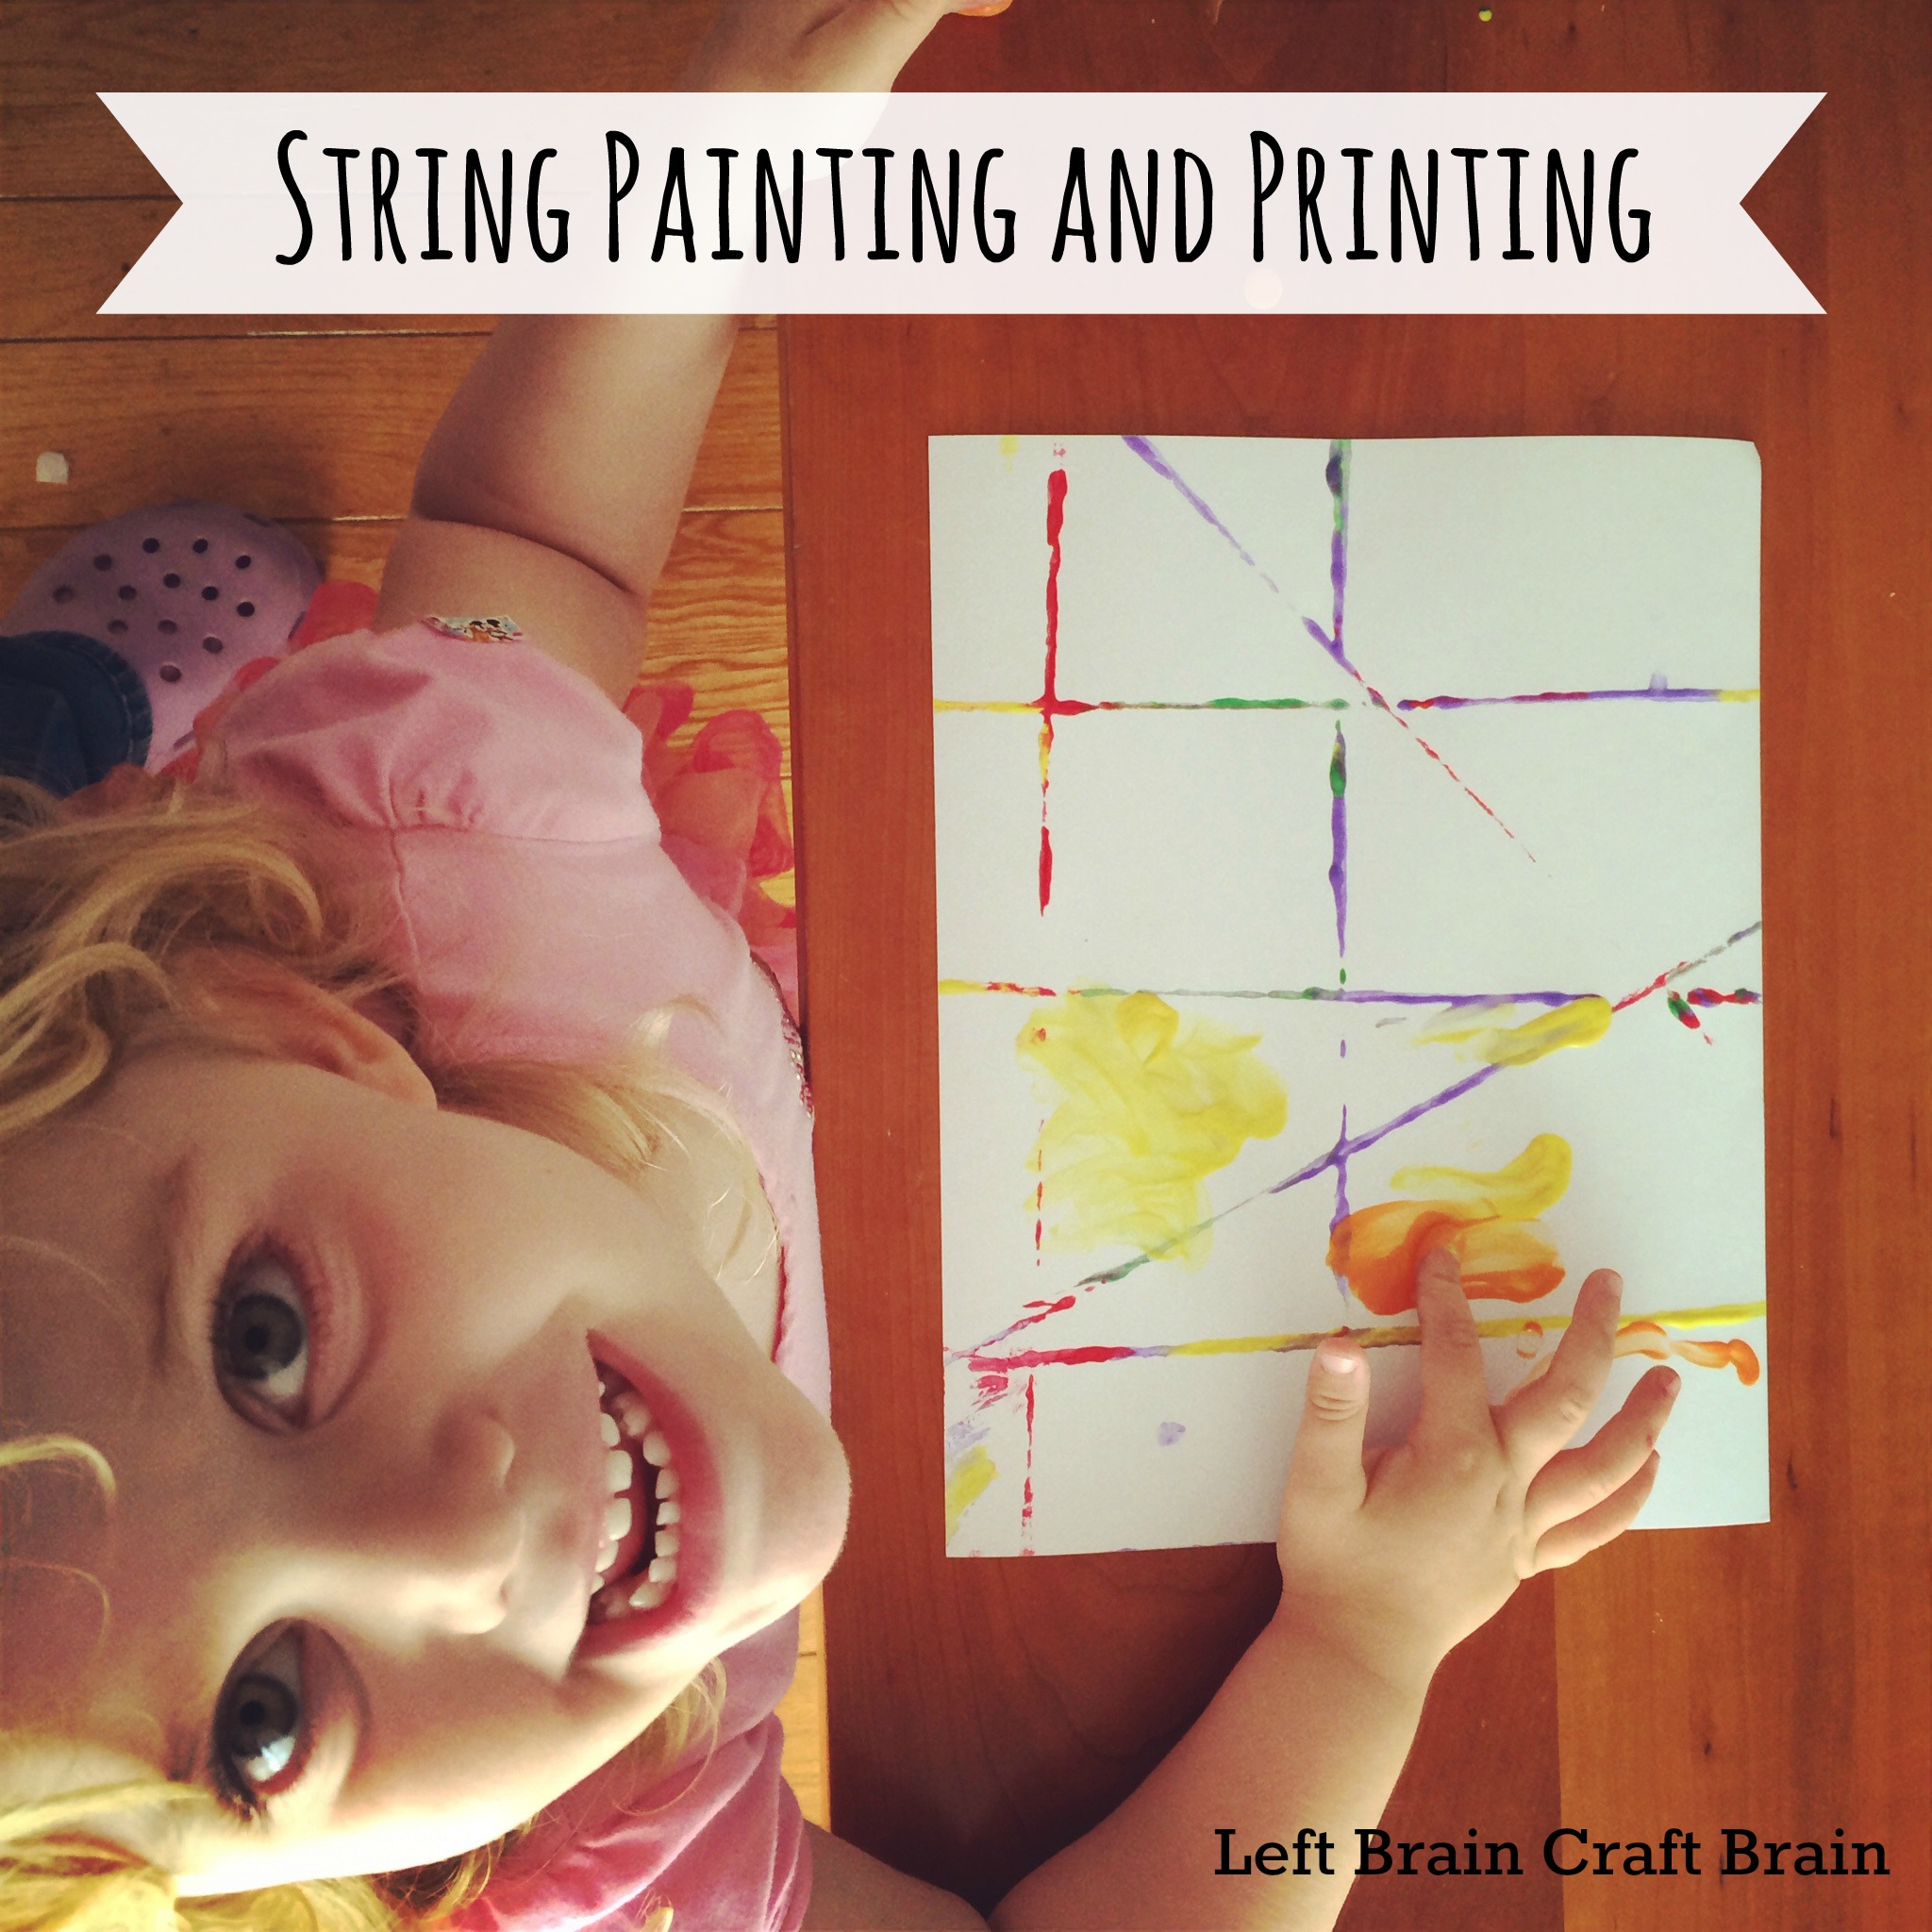 string painting and printing left brain craft brain